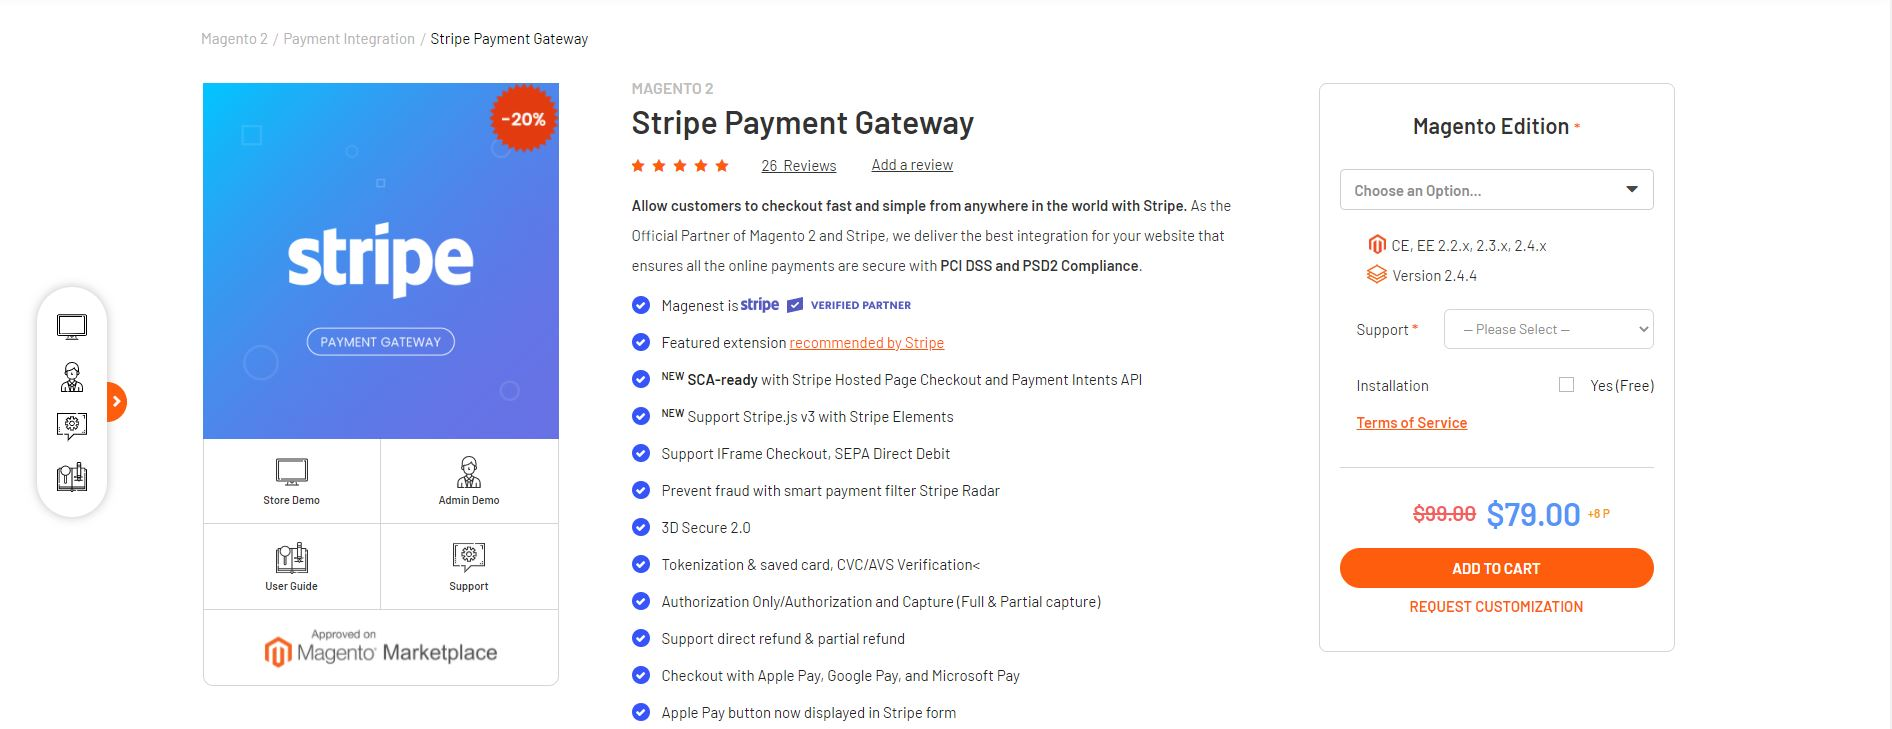 Magento payment gateway extension